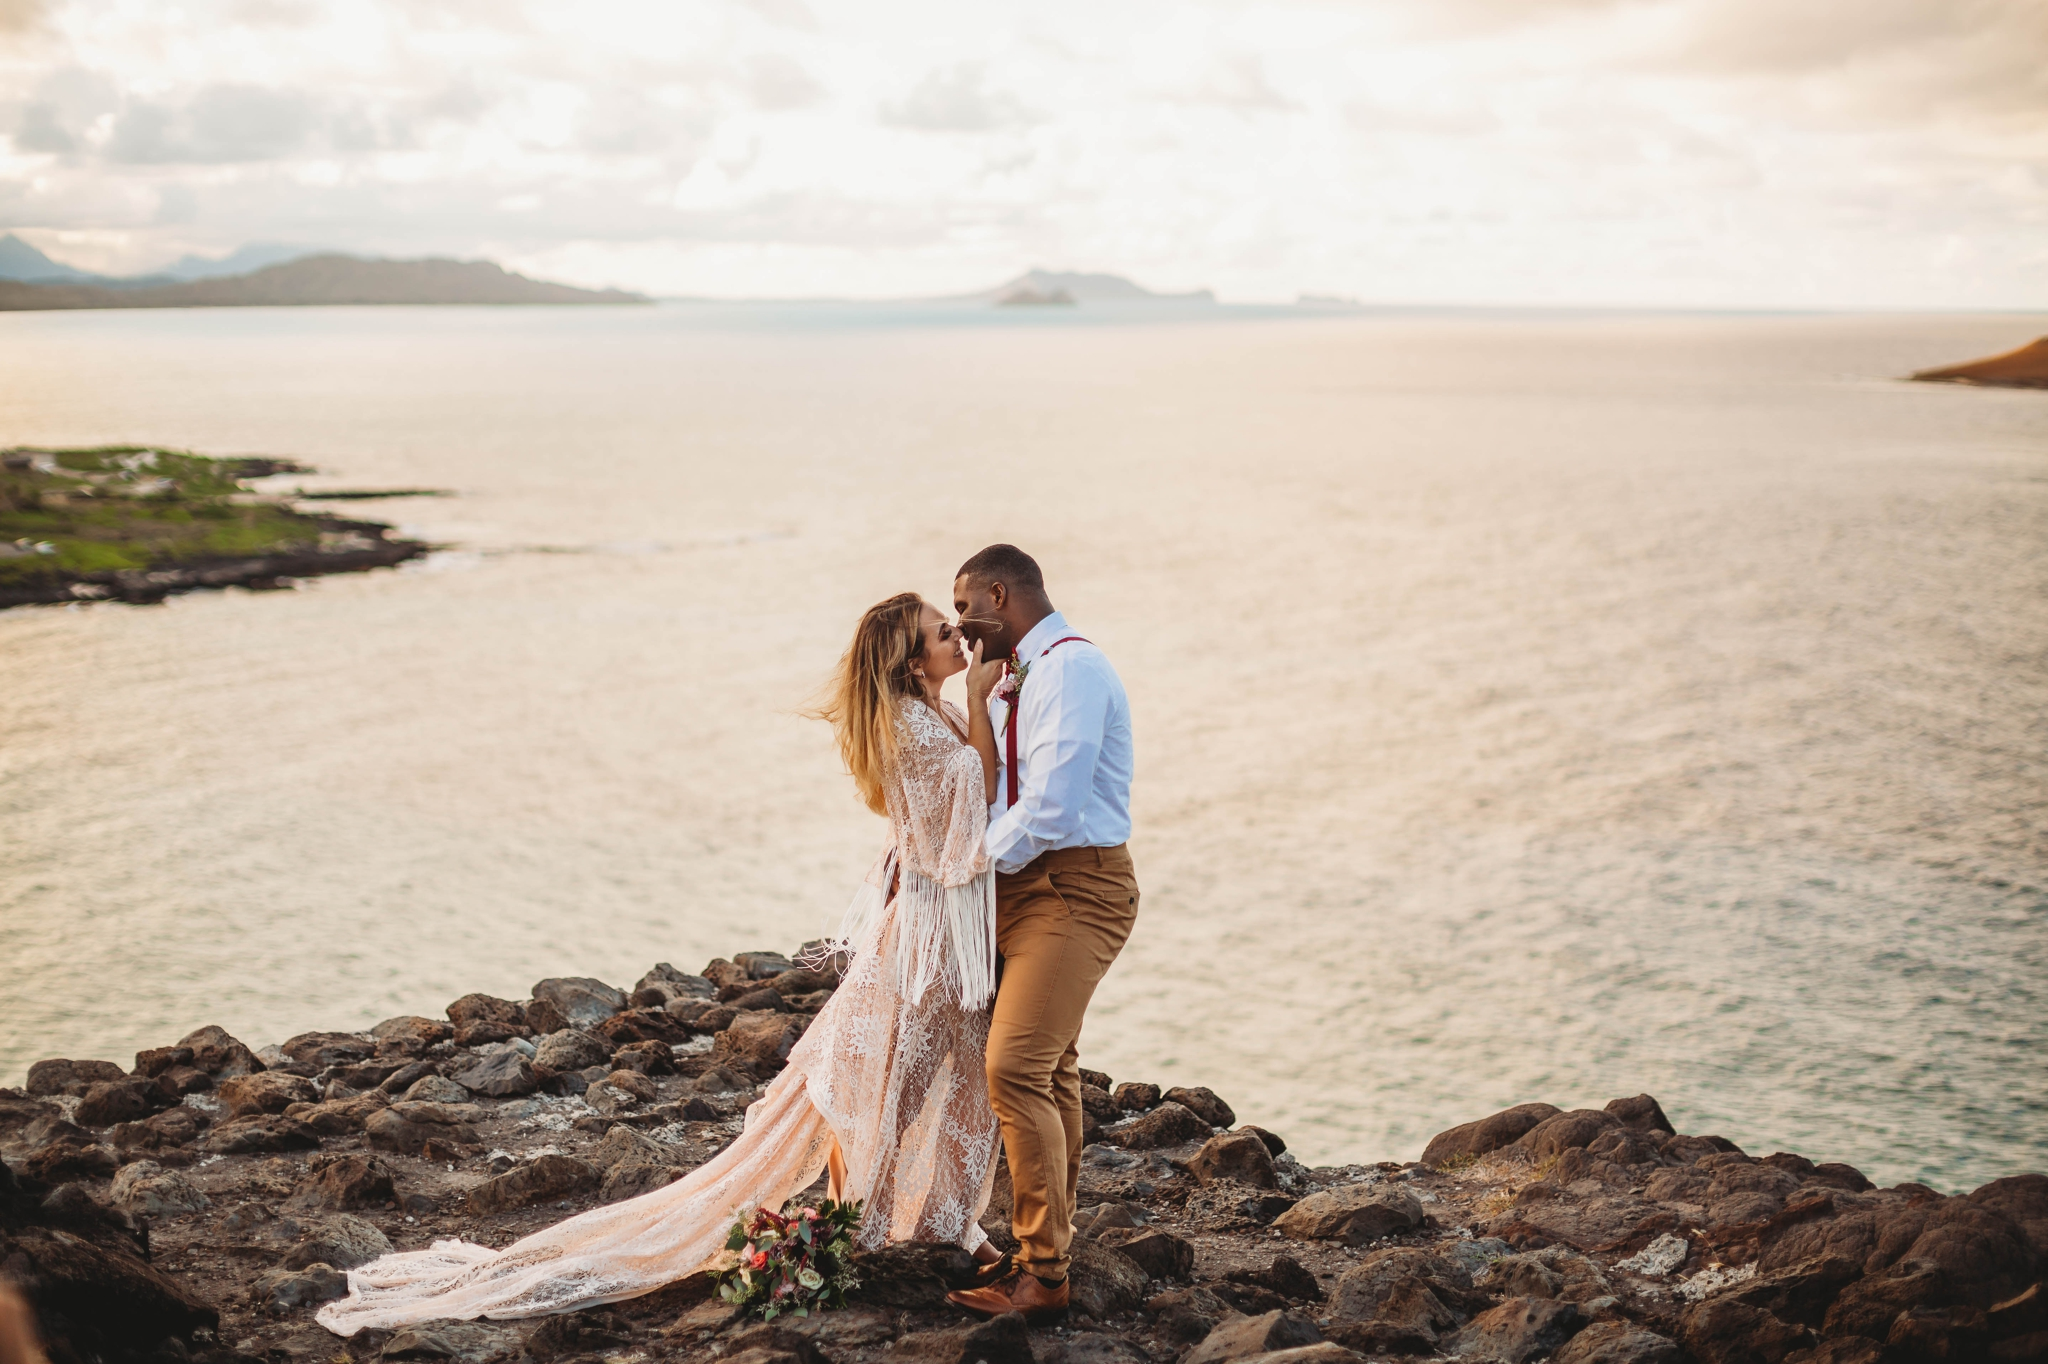 couple on the cliffs above Makapuu Beach at the Lookout, Waimanalo, HI - Oahu Hawaii Engagement Photographer - Bride in a flowy fringe boho wedding dress - lanikai lookout - deutsche hochzeits fotografin in hawaii - smal1 - dark and moody - true to live